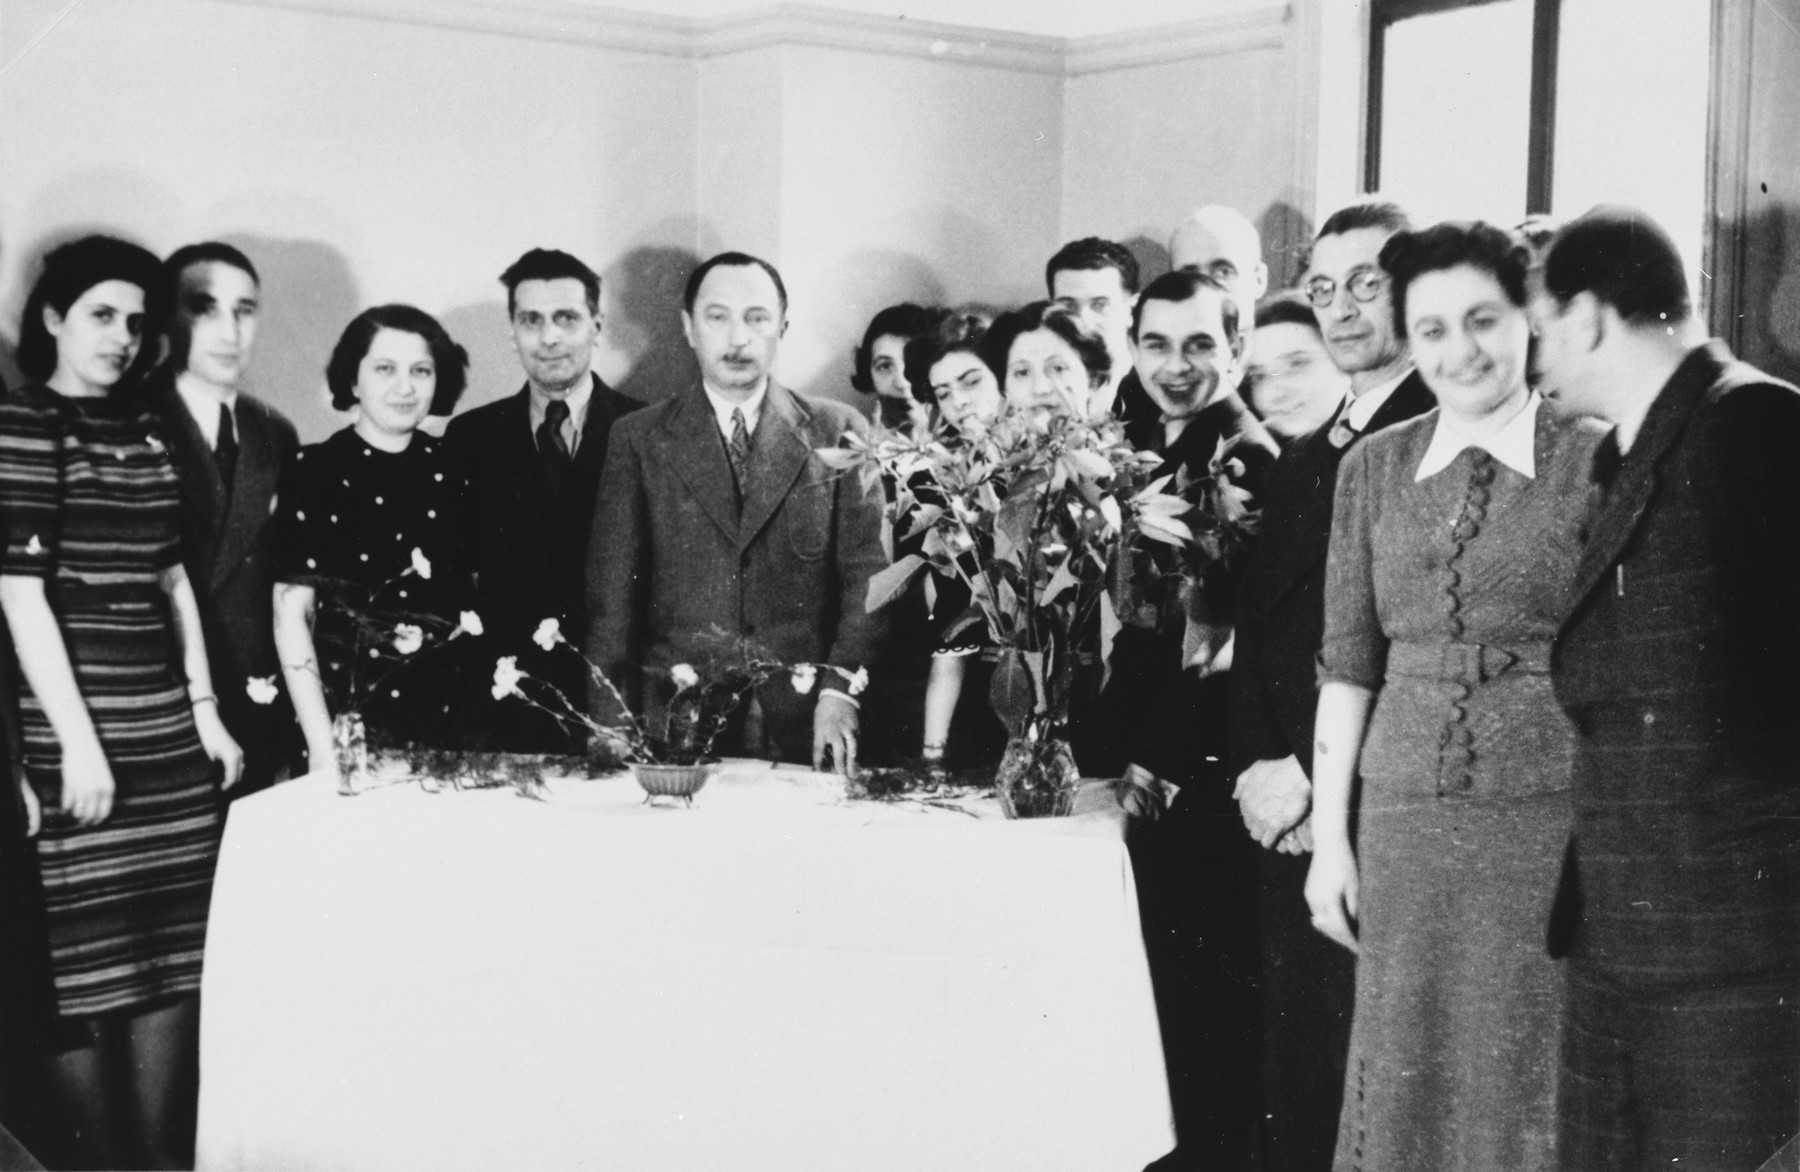 Paul Komor (center with the moustache) poses with fellow I.C. members at a festive gathering of the International Committee for European Immigrants in Shanghai.  One photograph from a second International Committee album prepared for I.C. secretary Paul Komor.